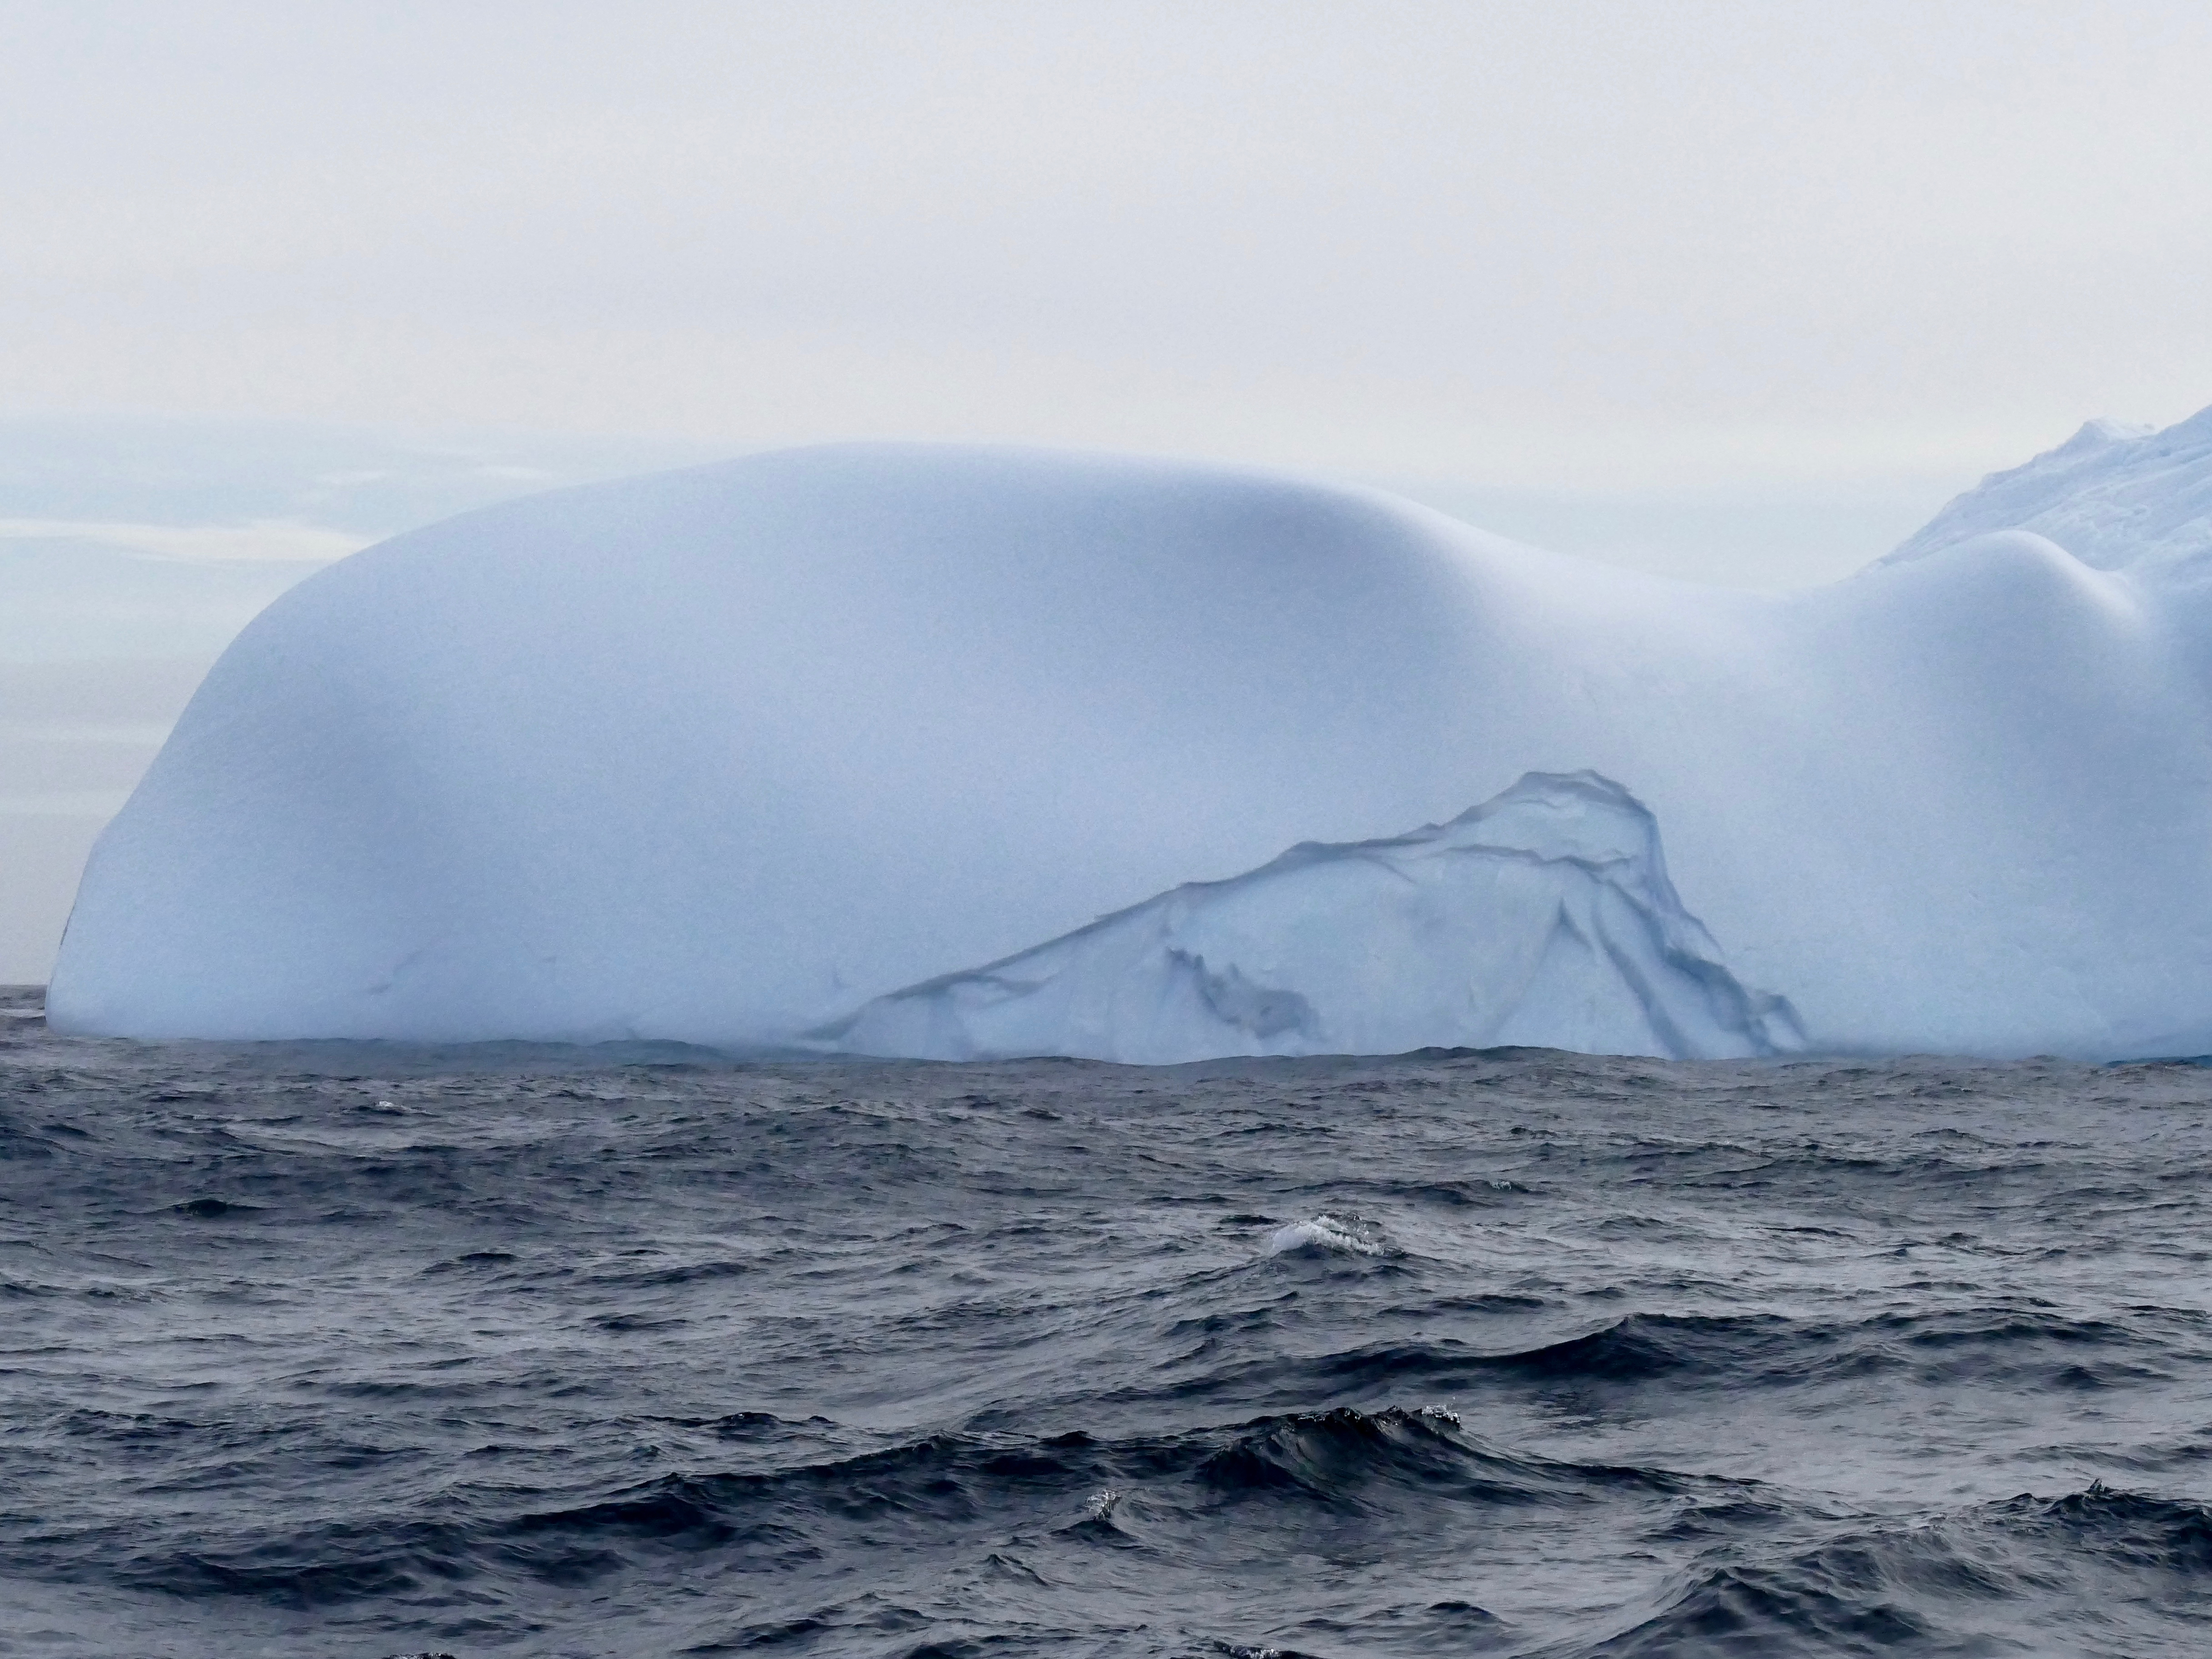 Whale head shaped icebergs in Weddell Sea